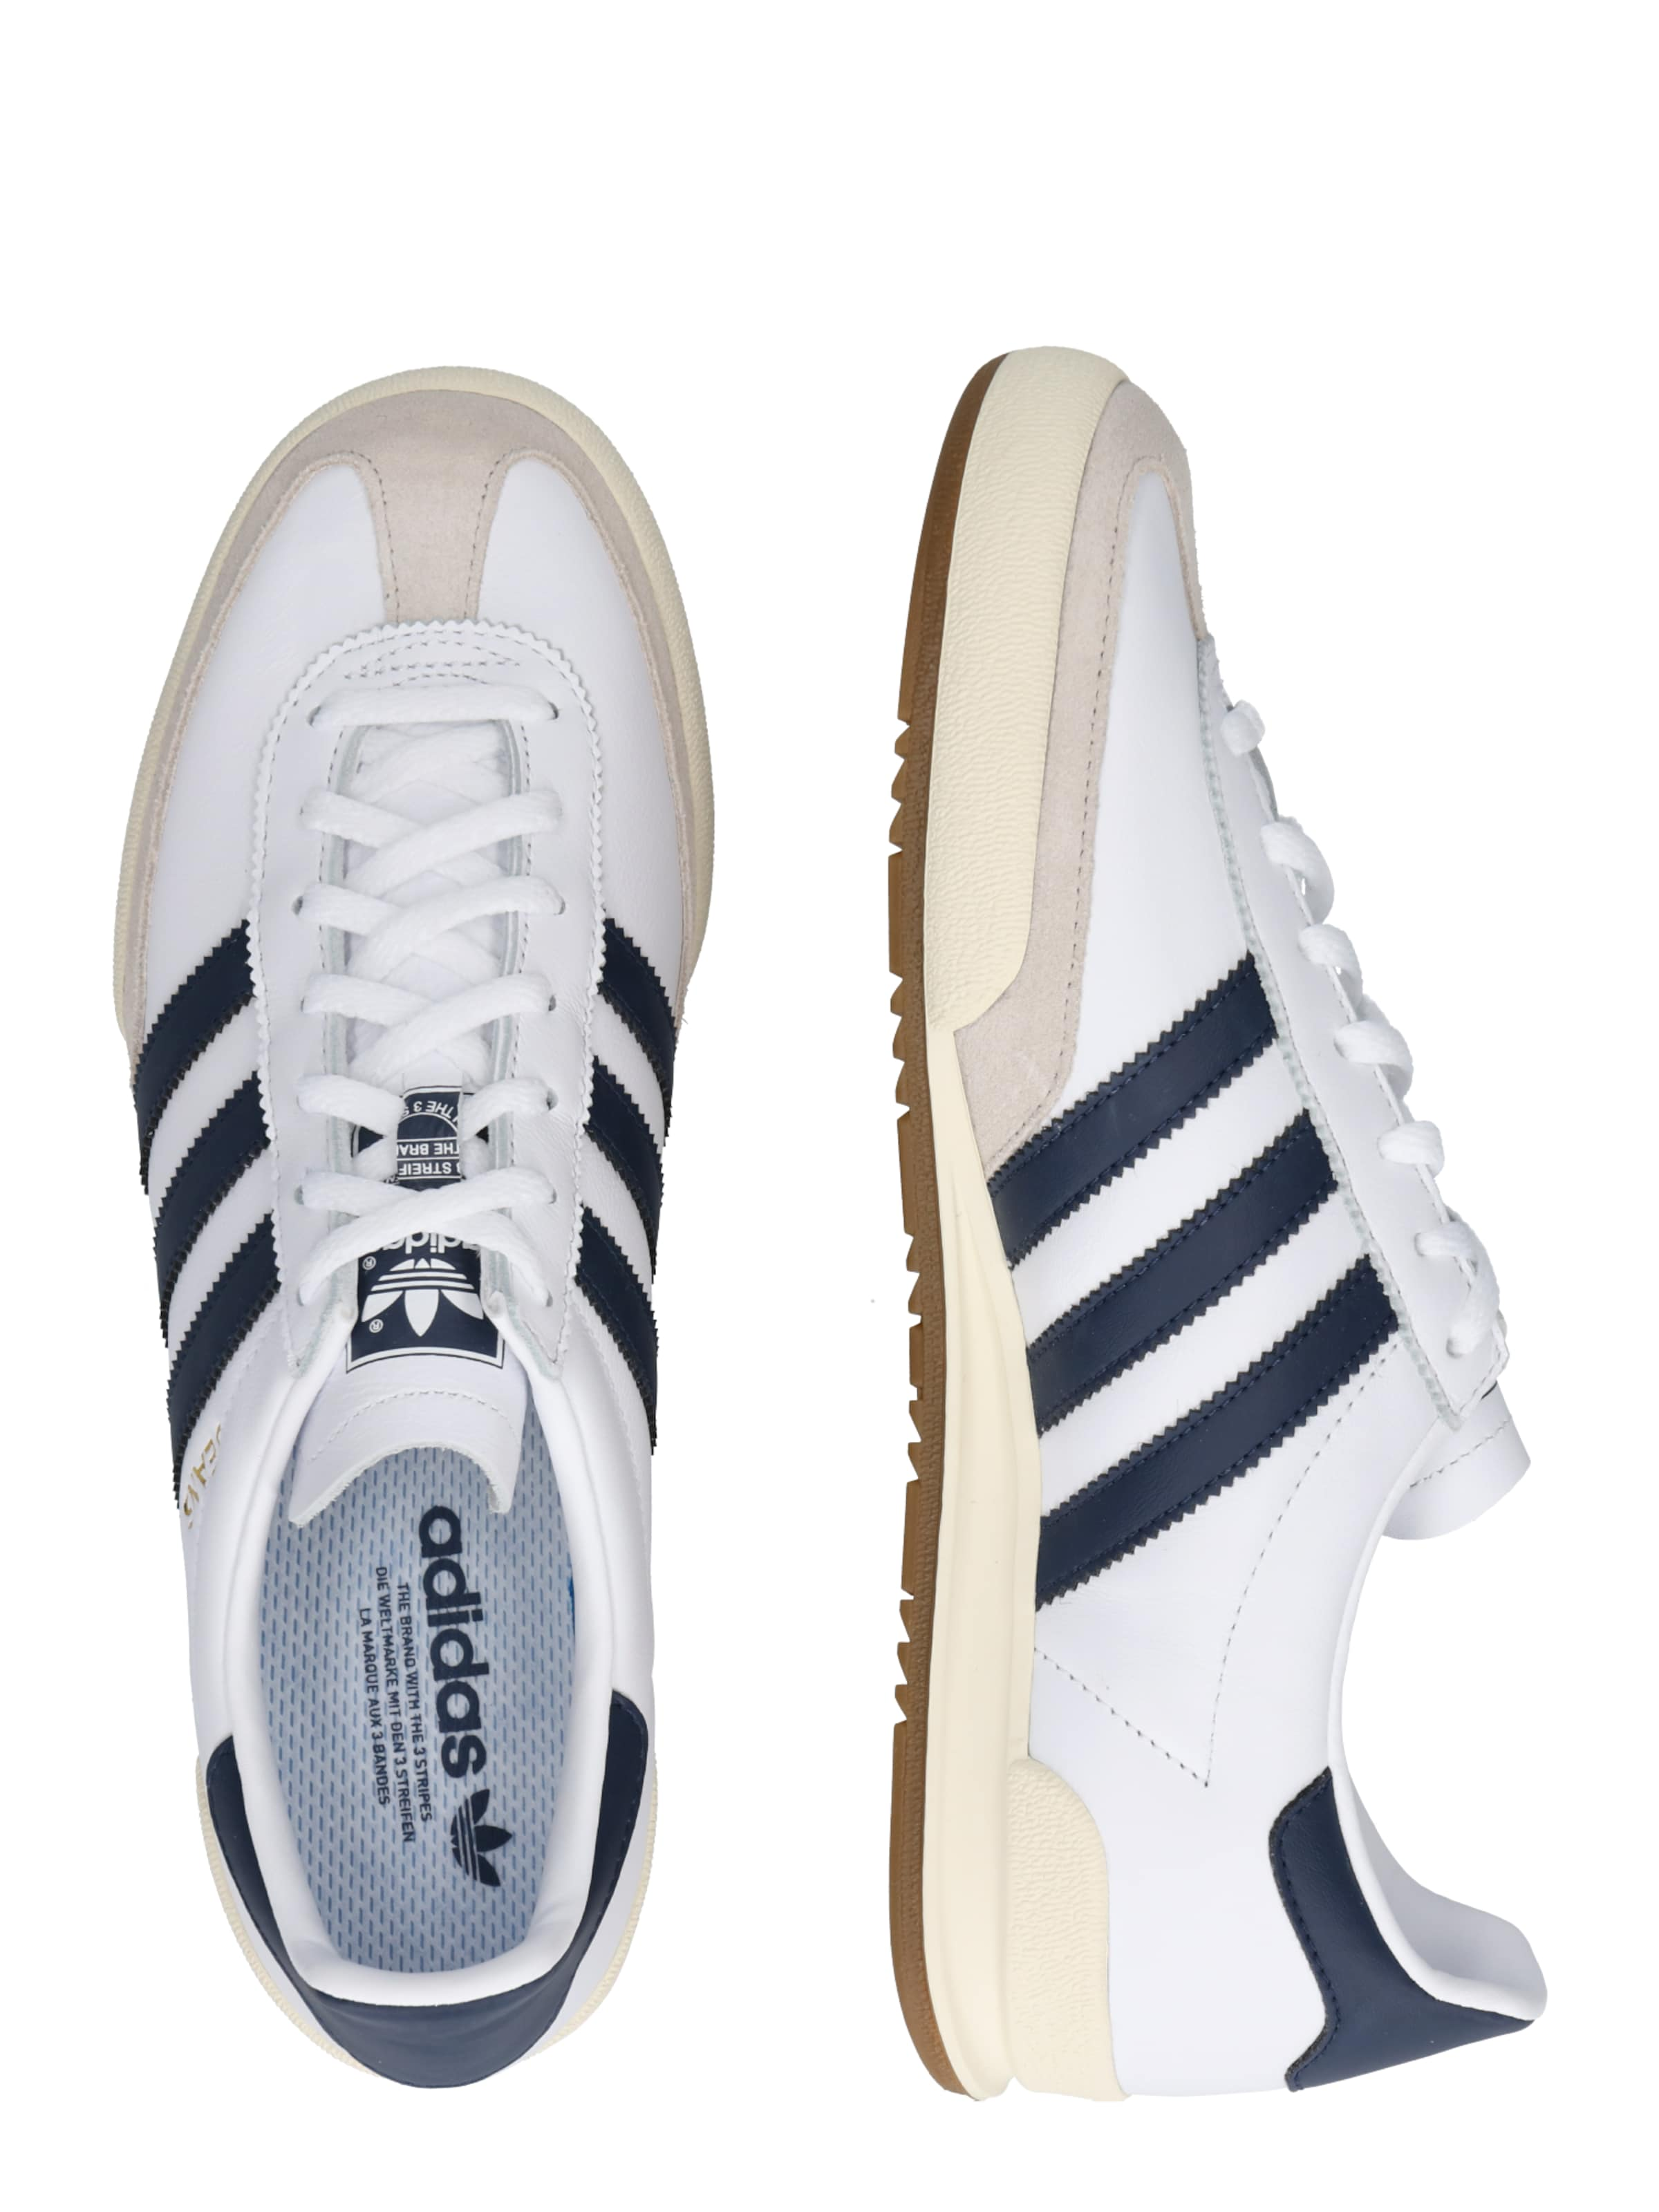 Originals In Originals Adidas Sneaker Originals Adidas Sneaker In Adidas NavyWeiß NavyWeiß LqpGzMUVS